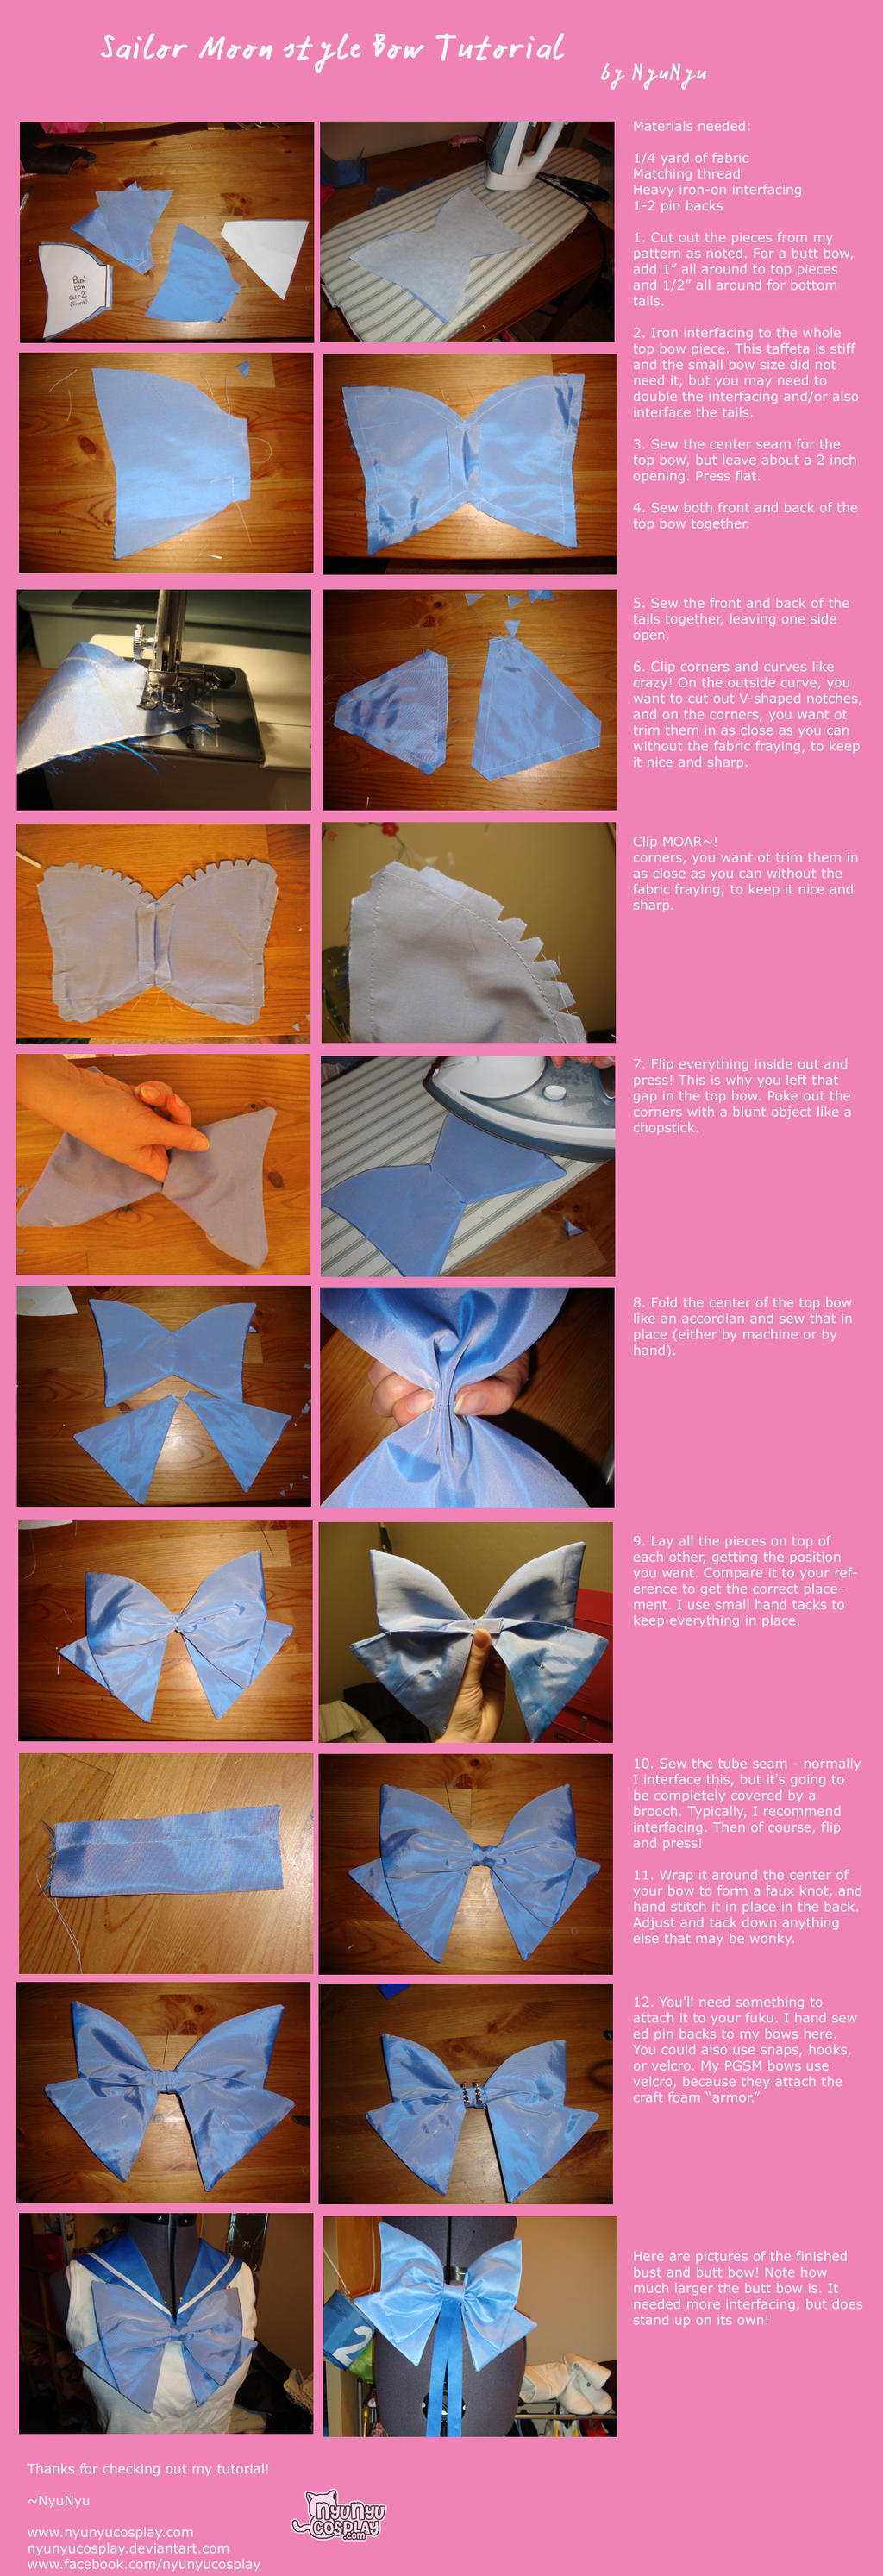 Sailor Moon style bow tutorial by nyunyucosplay